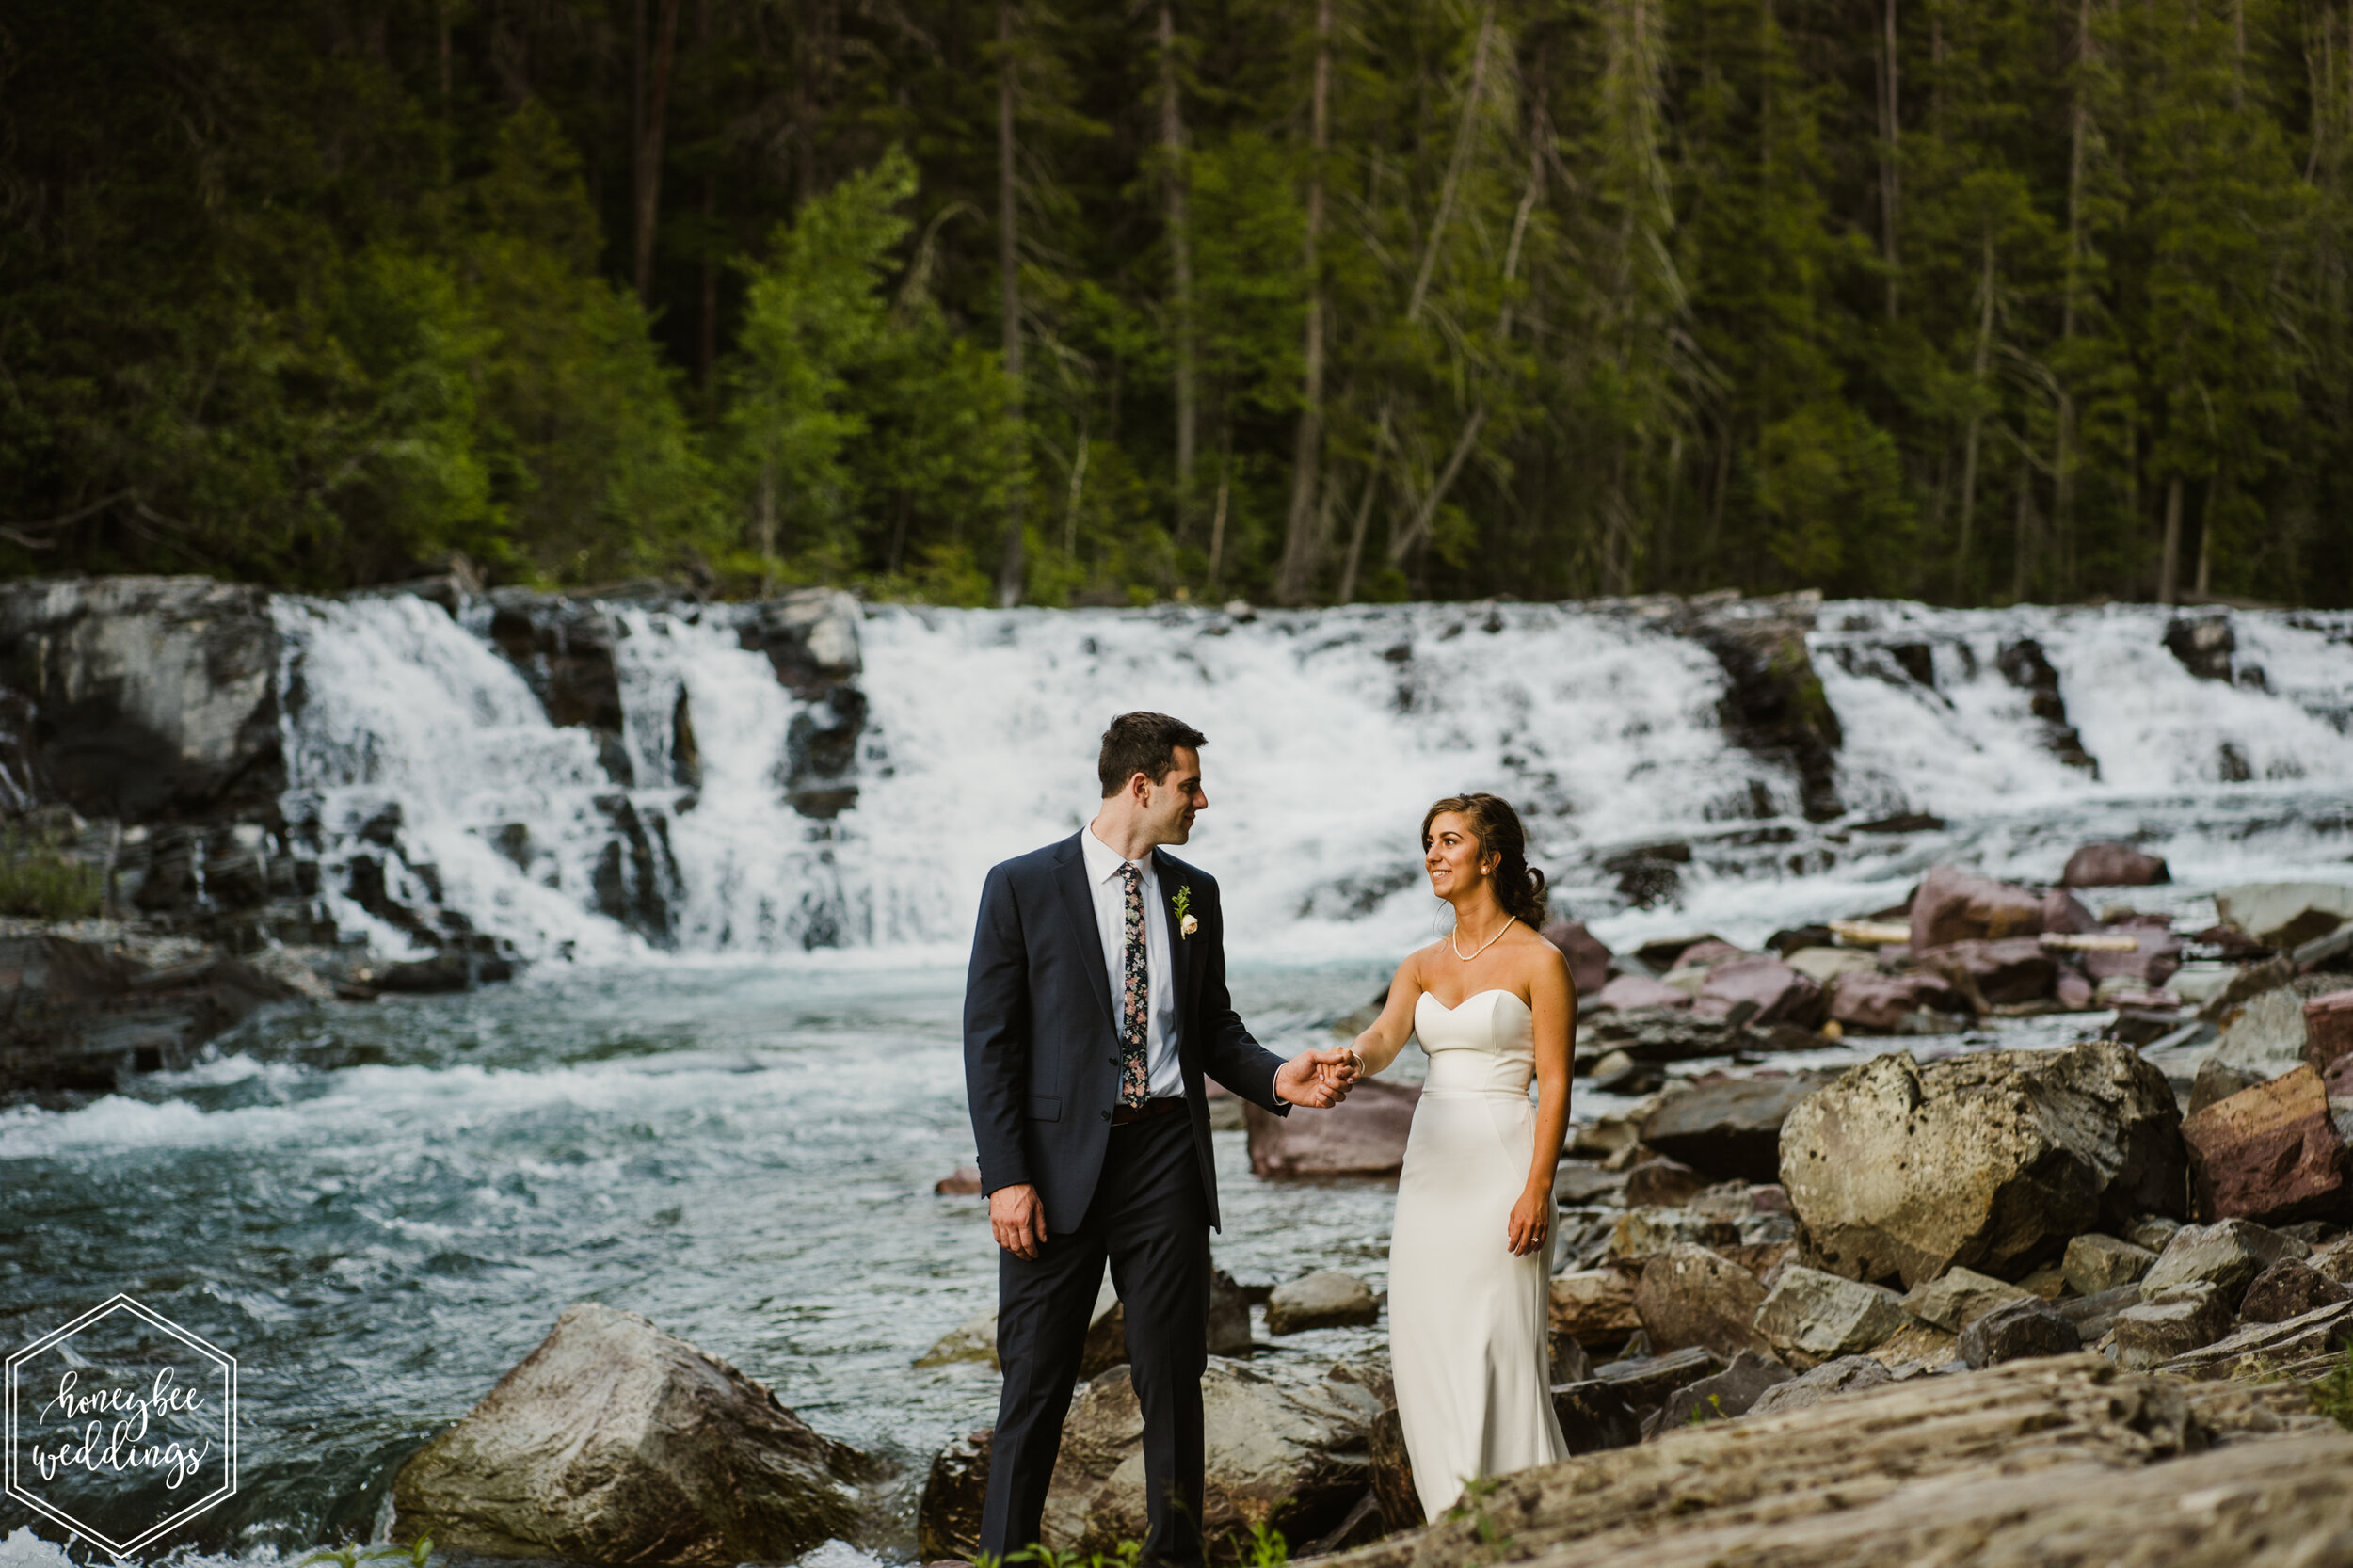 032Glacier National Park Wedding_Glacier Outdoor Center_Honeybee Weddings_Anna & Seth_July 21, 2019-418.jpg